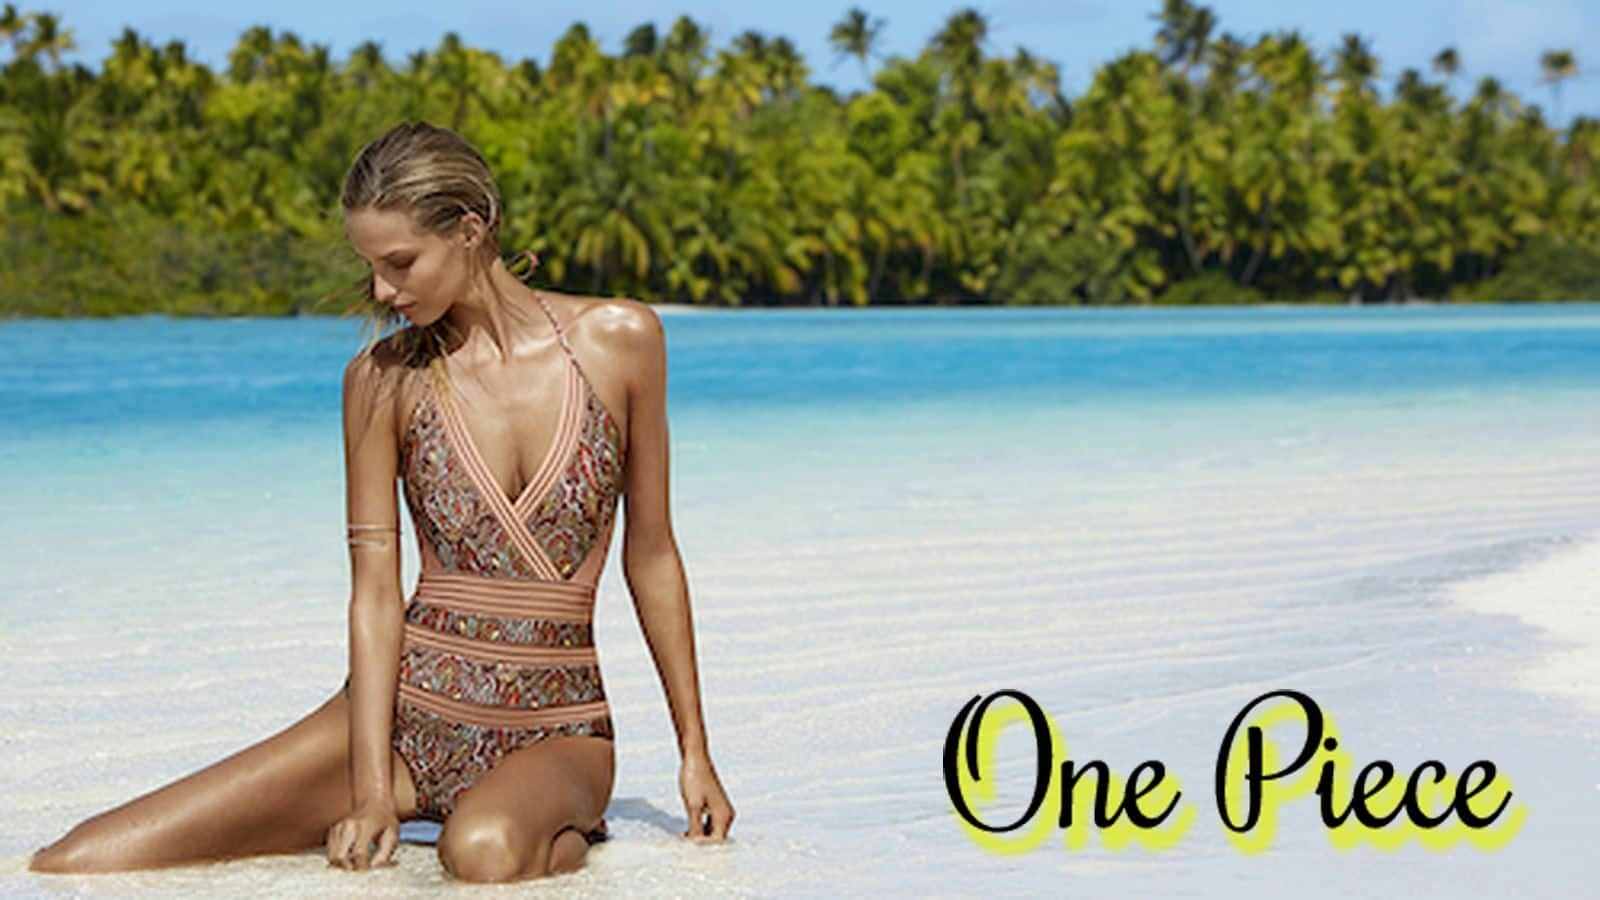 Once PIece Bikinis Beach Bums Miami